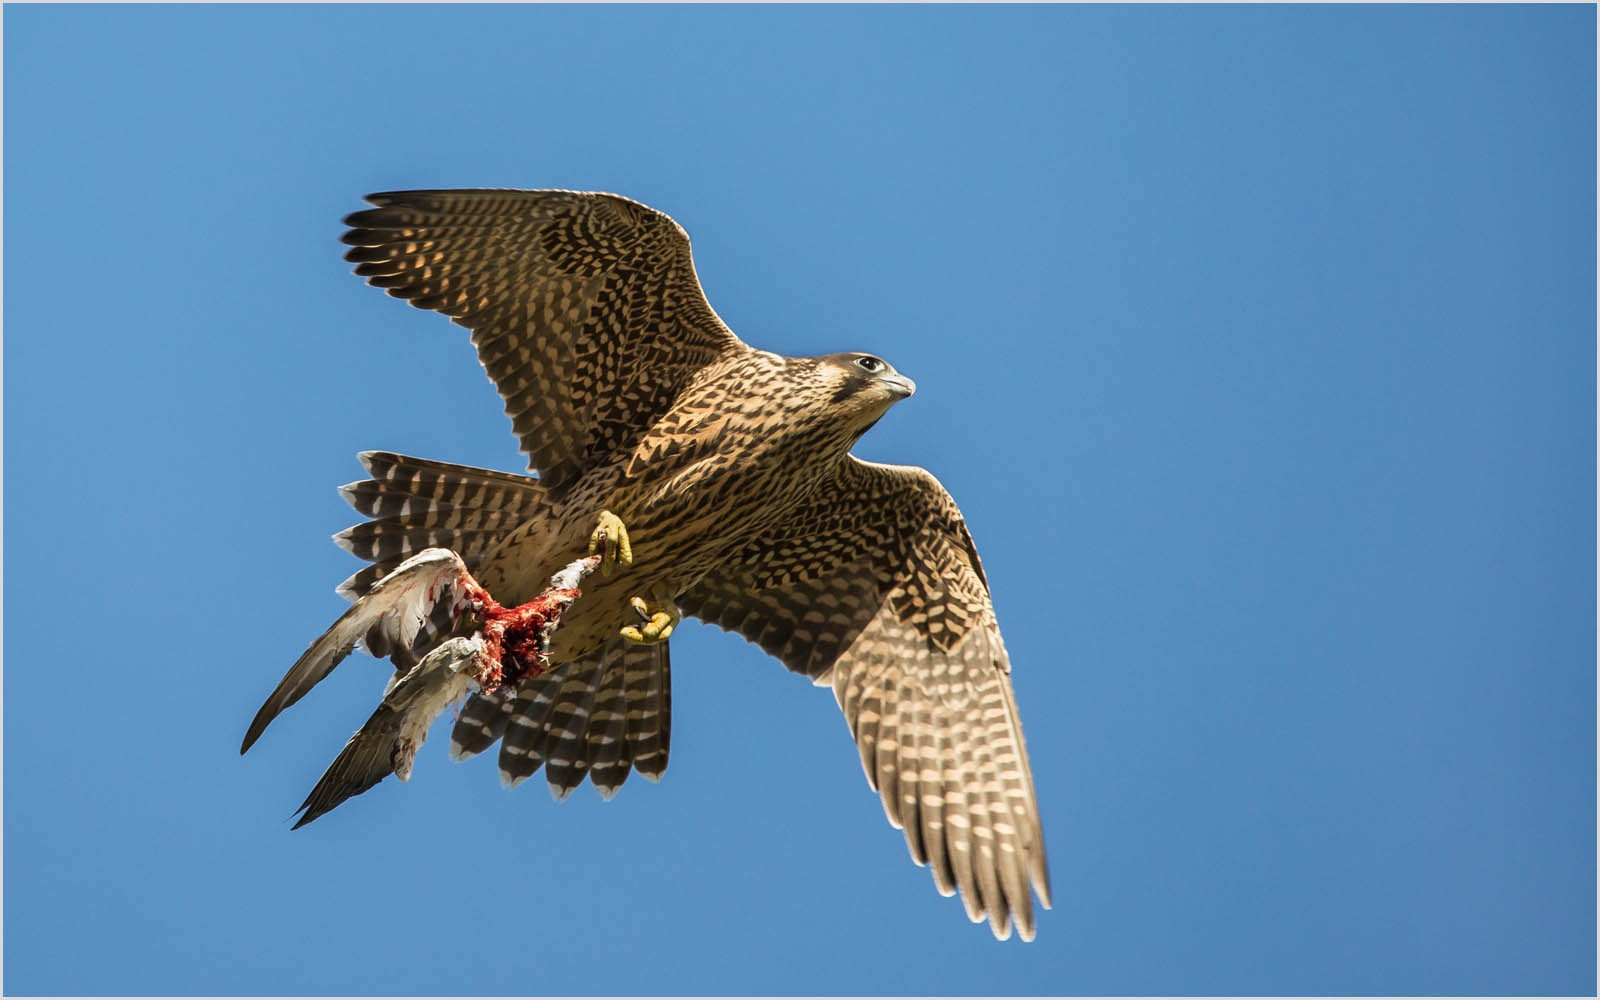 10. Young Peregrine with prey